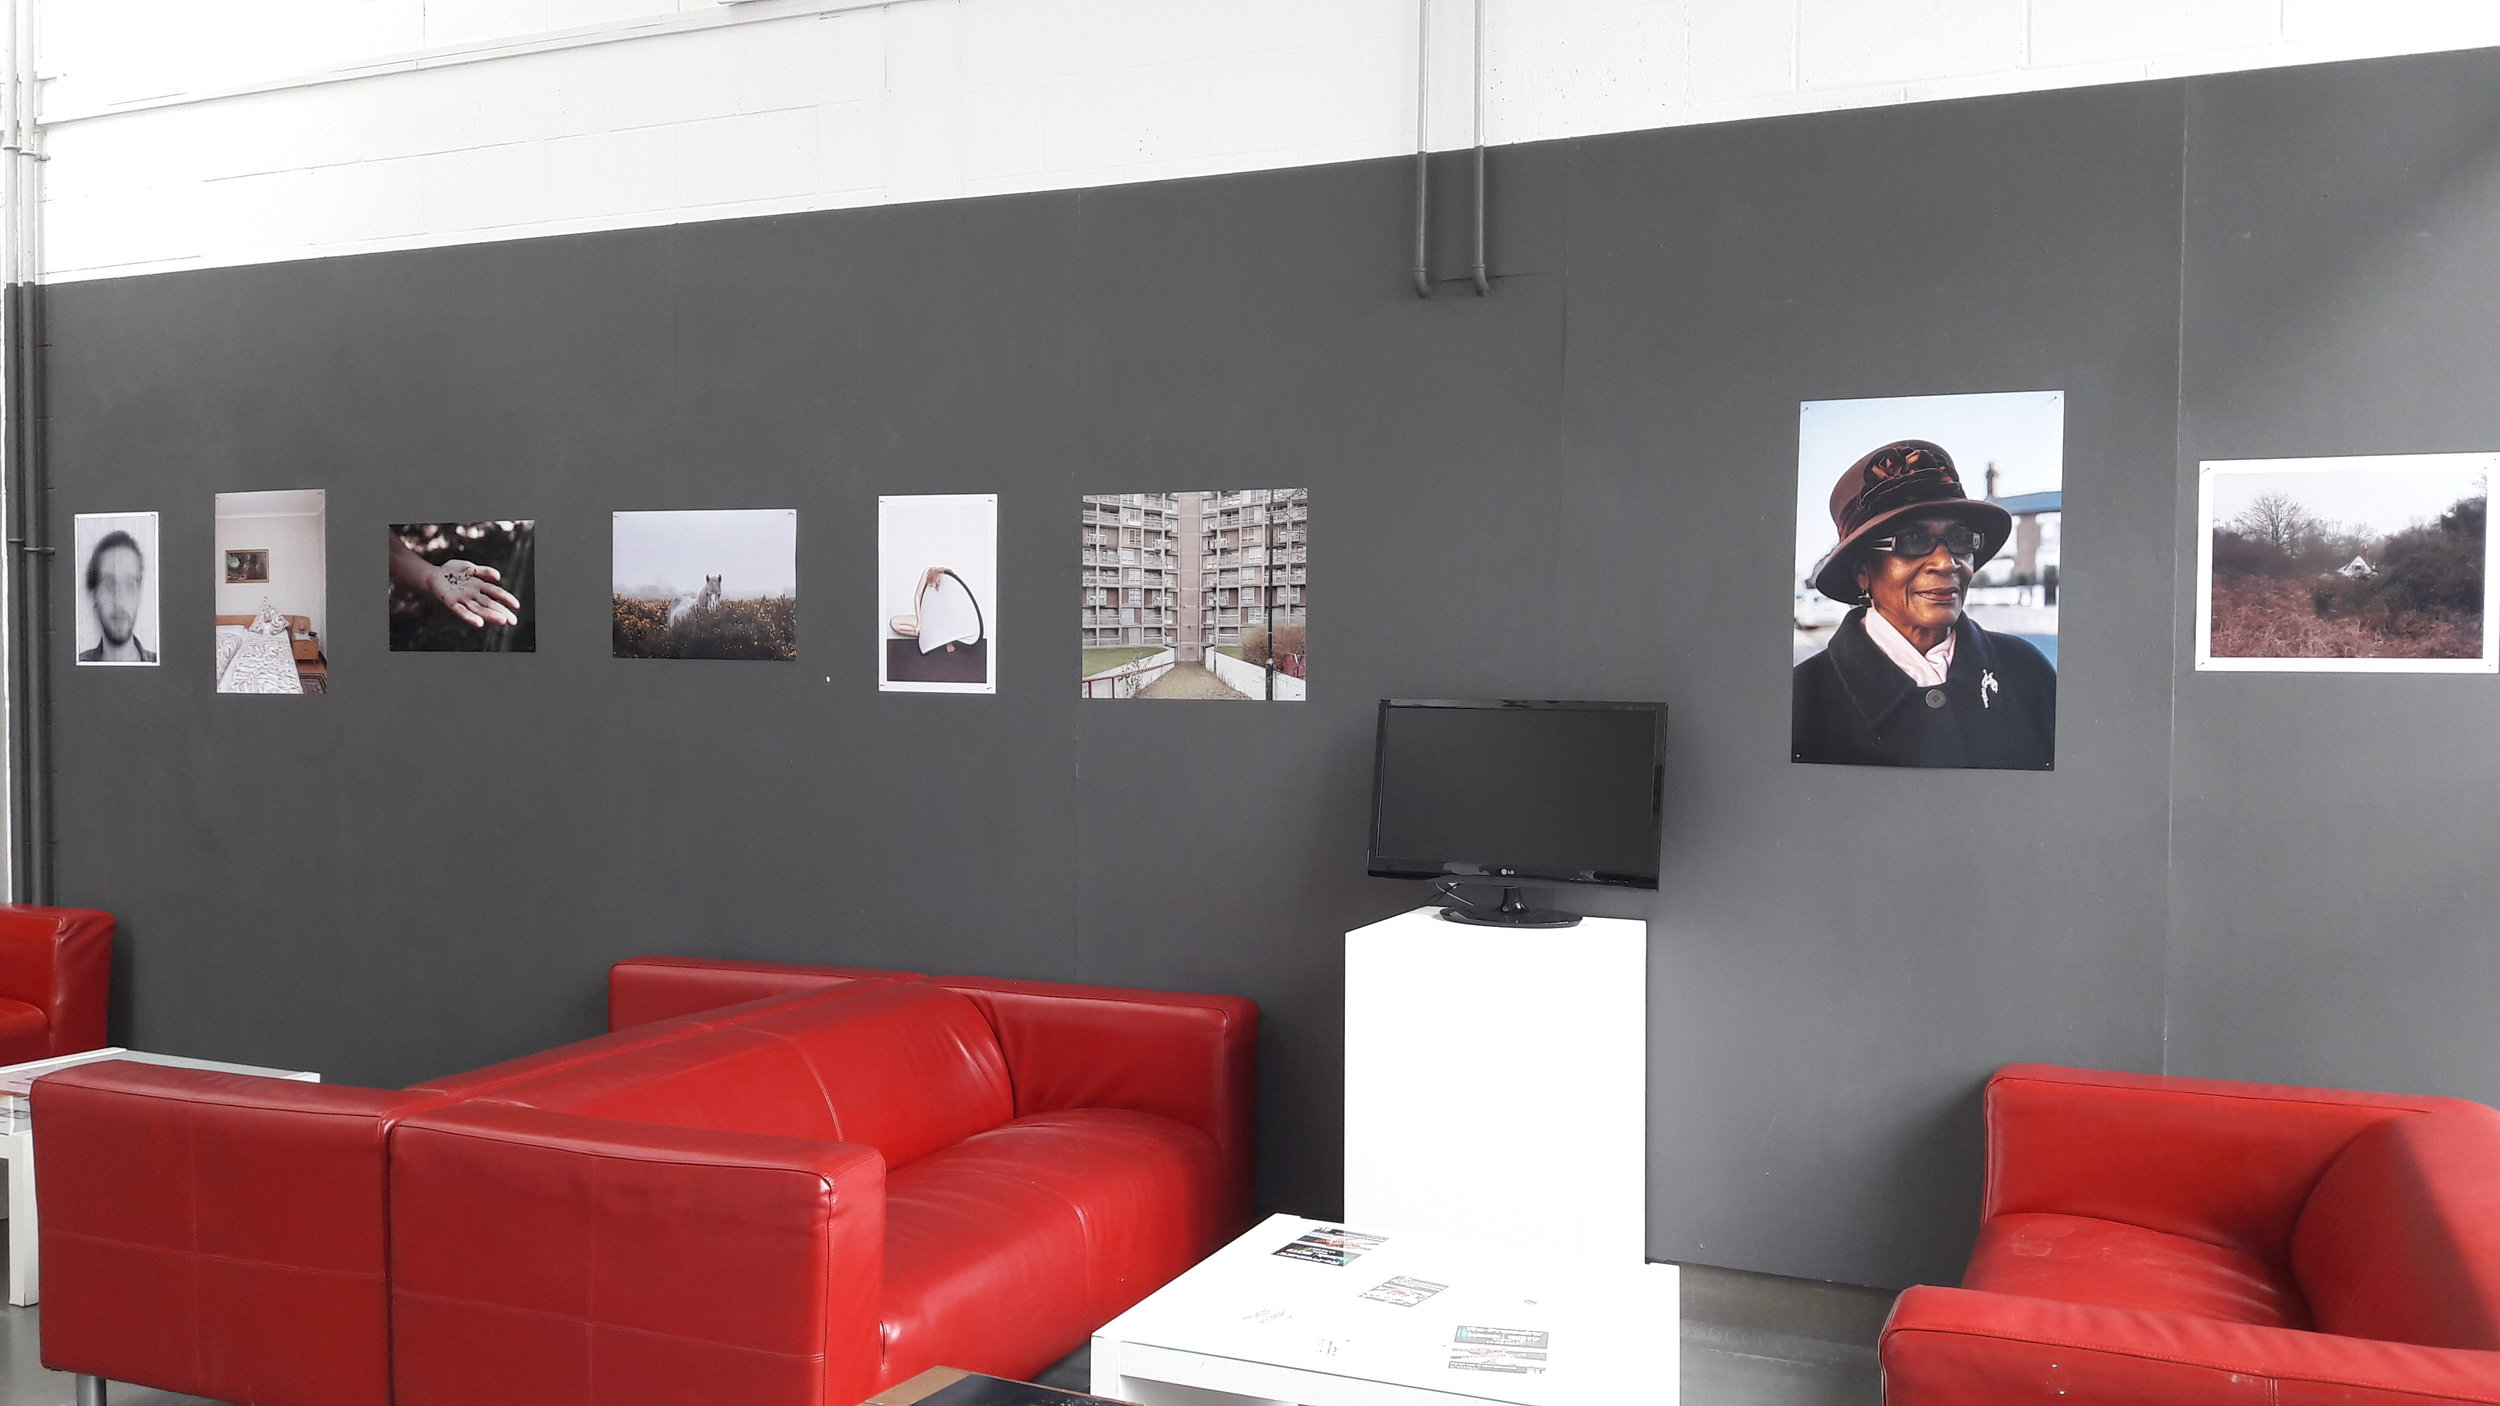 Installation image of some of the work at the Arts Café  (From left to right: Liam Collins, Christina Stohn, Victoria Chetley, Marie-Louise Garratt, Jocelyn Allen, Leticia Batty, Matt MacPake, Alastair Bartlett)